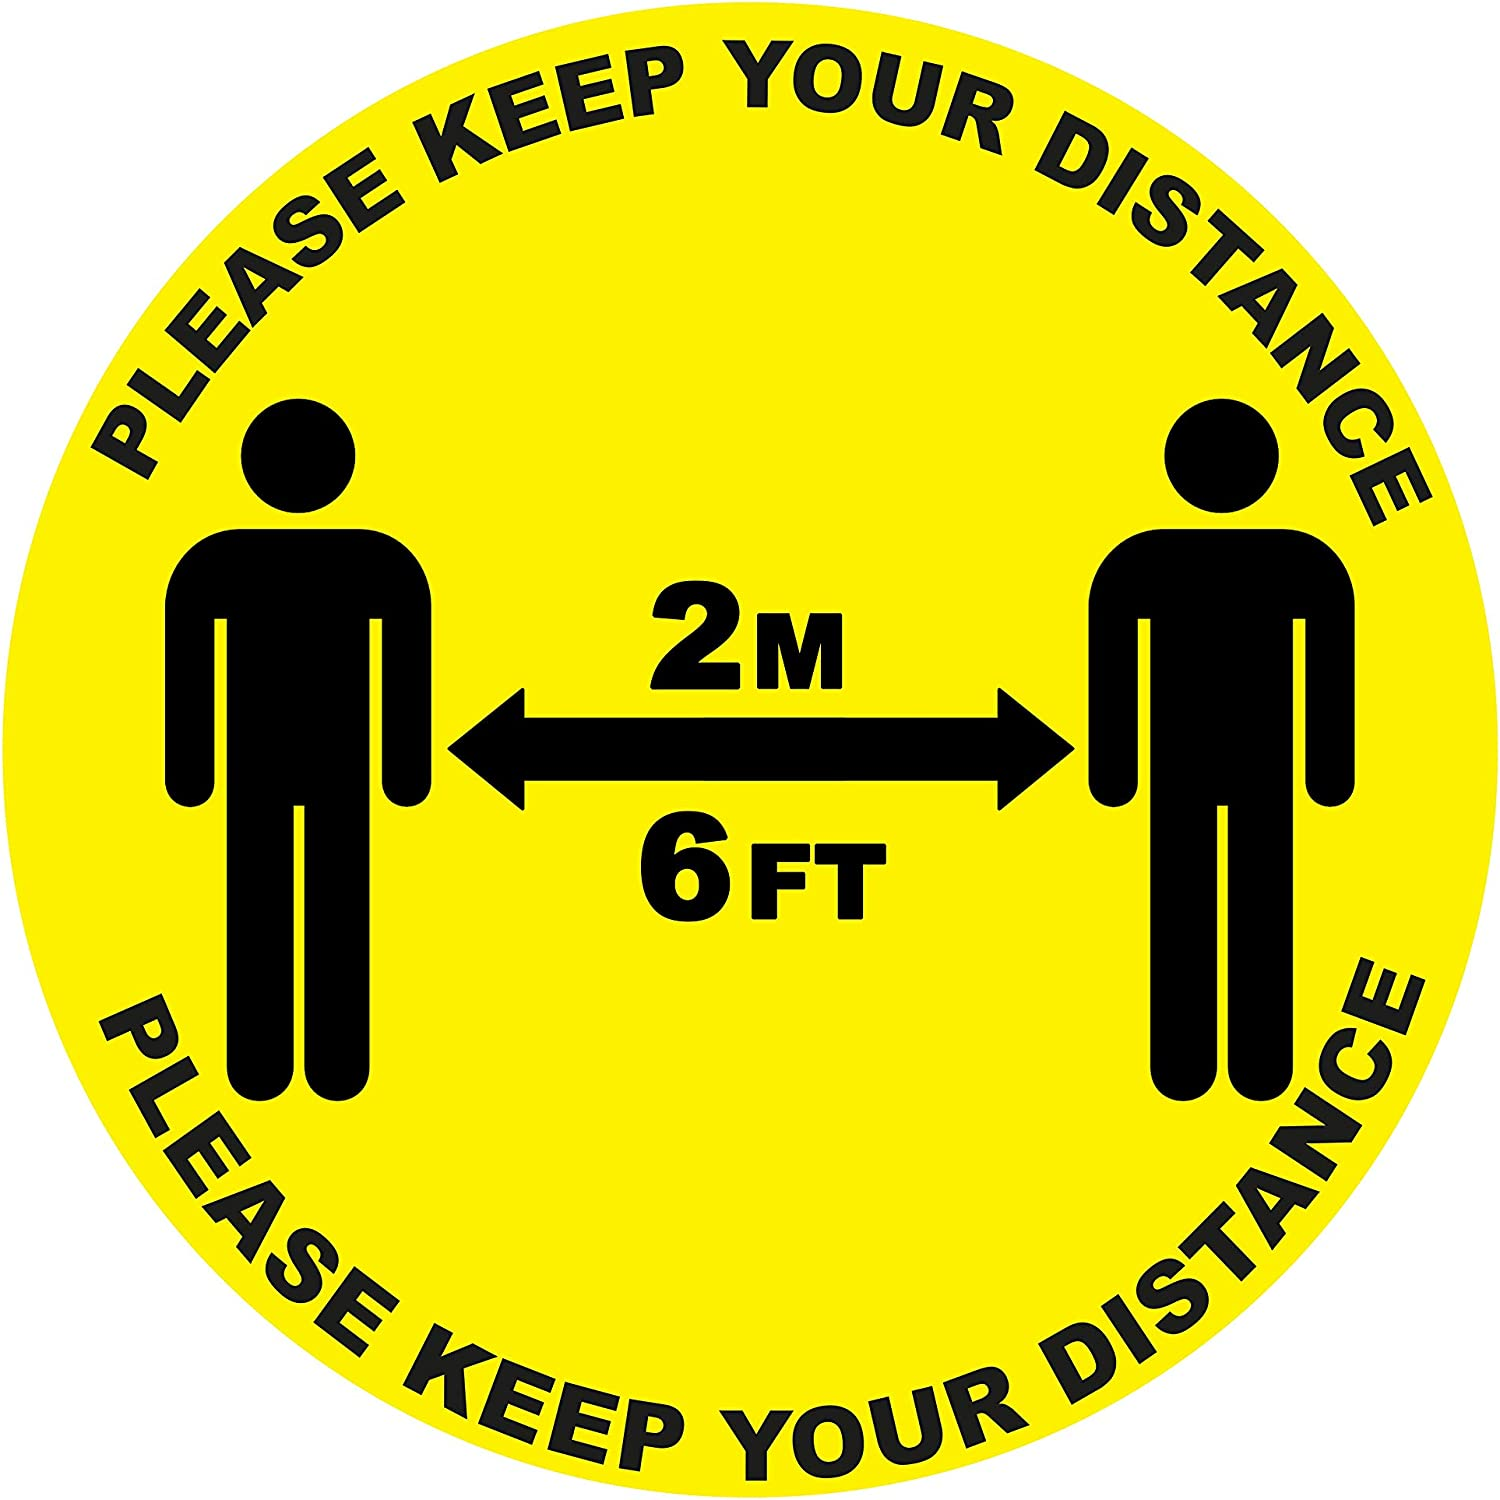 2 x please keep your distance SC-20 15cm x 15cm - social distancing landscape floor safety sign self adhesive vinyl weather proof label sticker